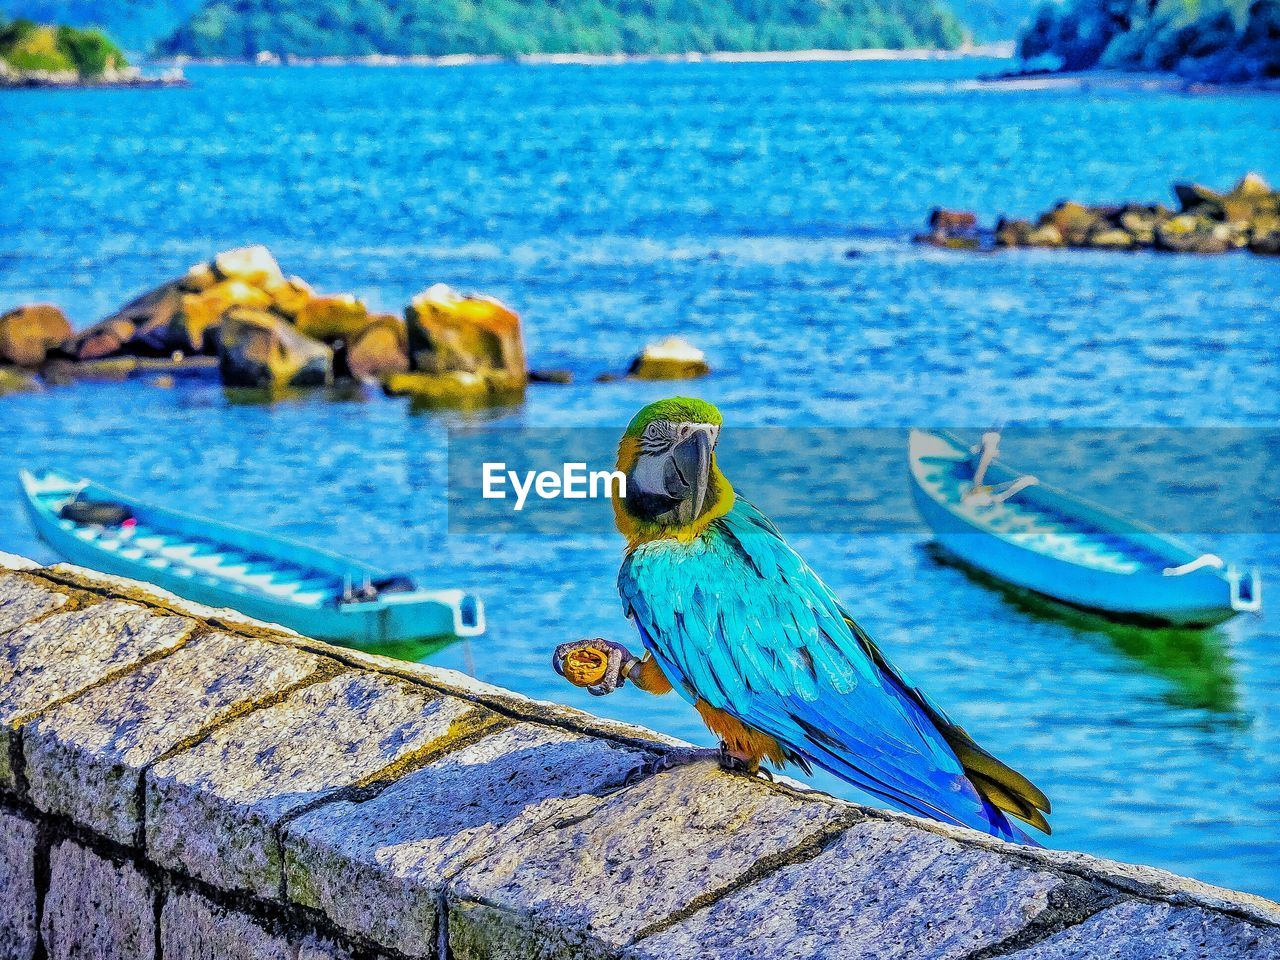 water, one animal, blue, animal themes, sea, animals in the wild, perching, no people, focus on foreground, bird, day, wood - material, animal wildlife, outdoors, nautical vessel, nature, close-up, beauty in nature, parrot, gold and blue macaw, macaw, sky